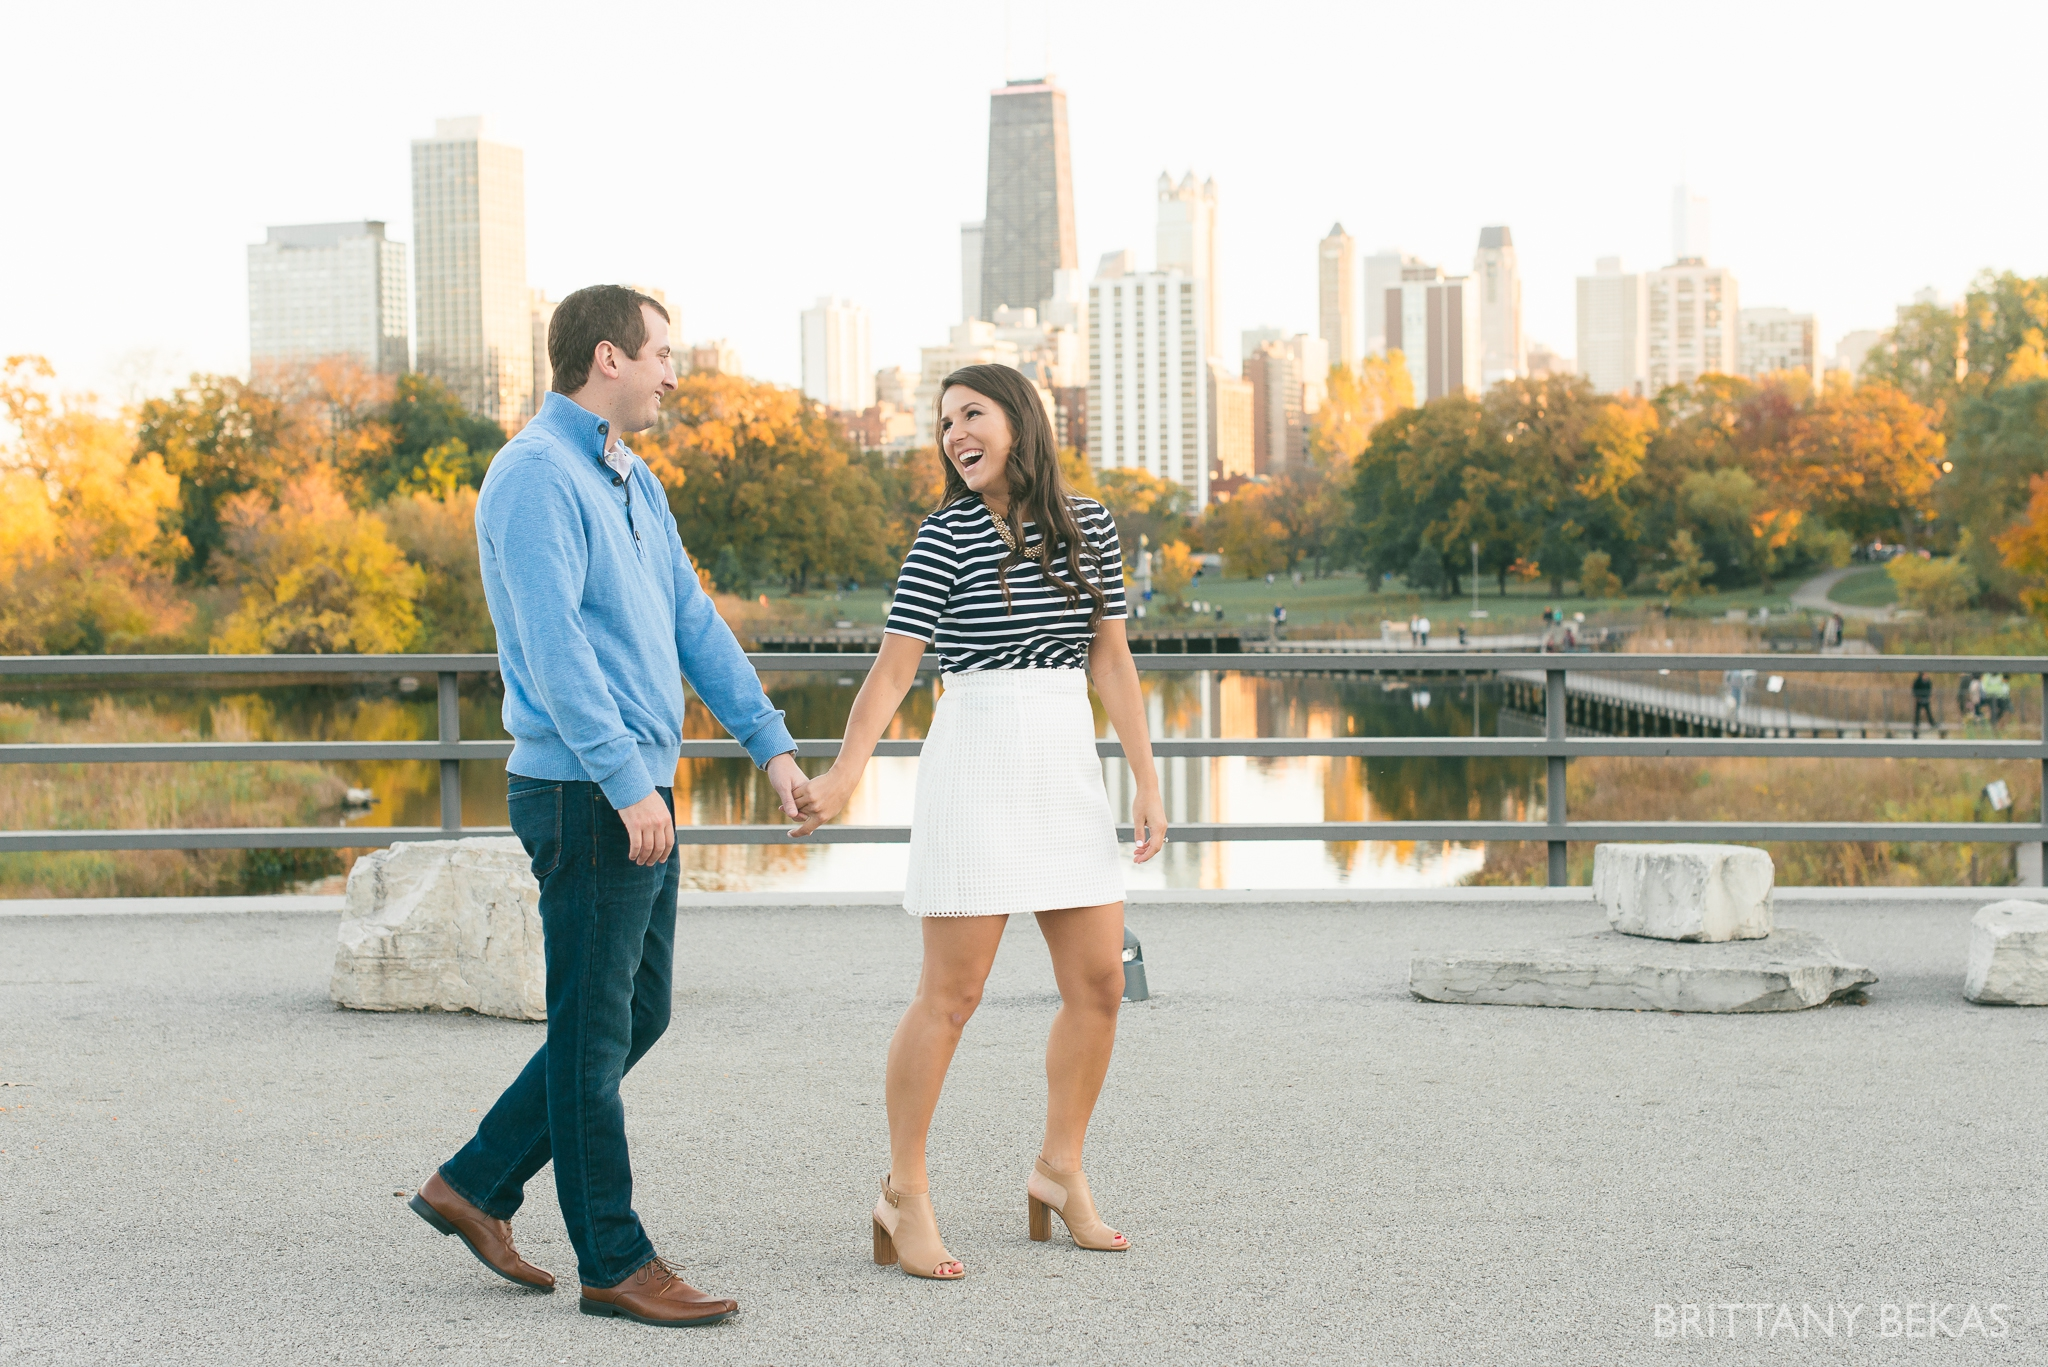 Chicago Engagement Lincoln Park Engagement Photos - Brittany Bekas Photography_0028